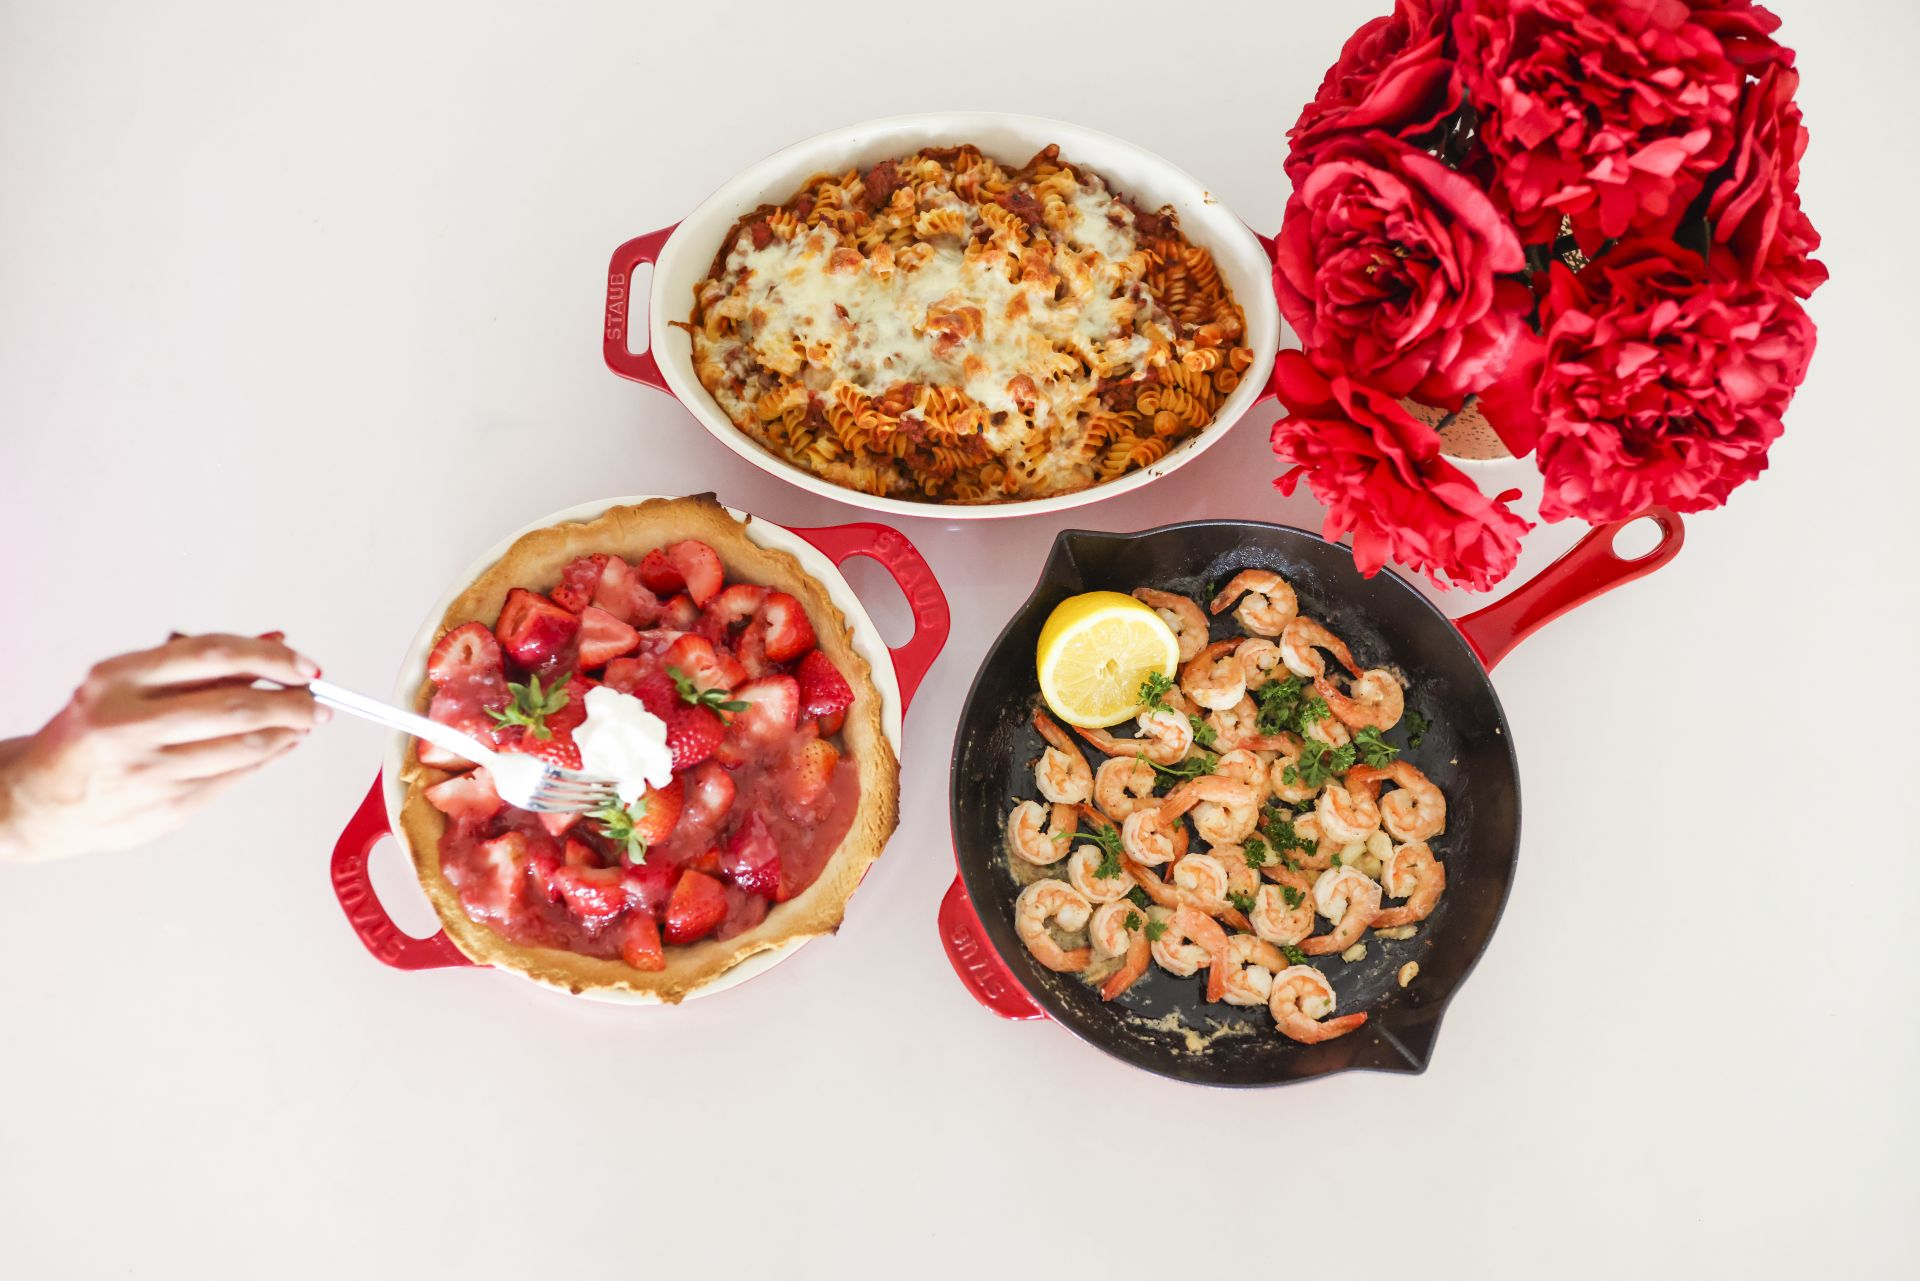 Staub cookware, mother's day gift ideas, best affordable cookware, durable cookware, mother's day gifts, cooking gifts, gifts for moms who love to cook, kitchen essentials, must have cookware, easy recipes for moms, recipes to cook with your kids, recipe ideas, beginner recipe ideas Jennifer Worman, Red Soles and Red Wine